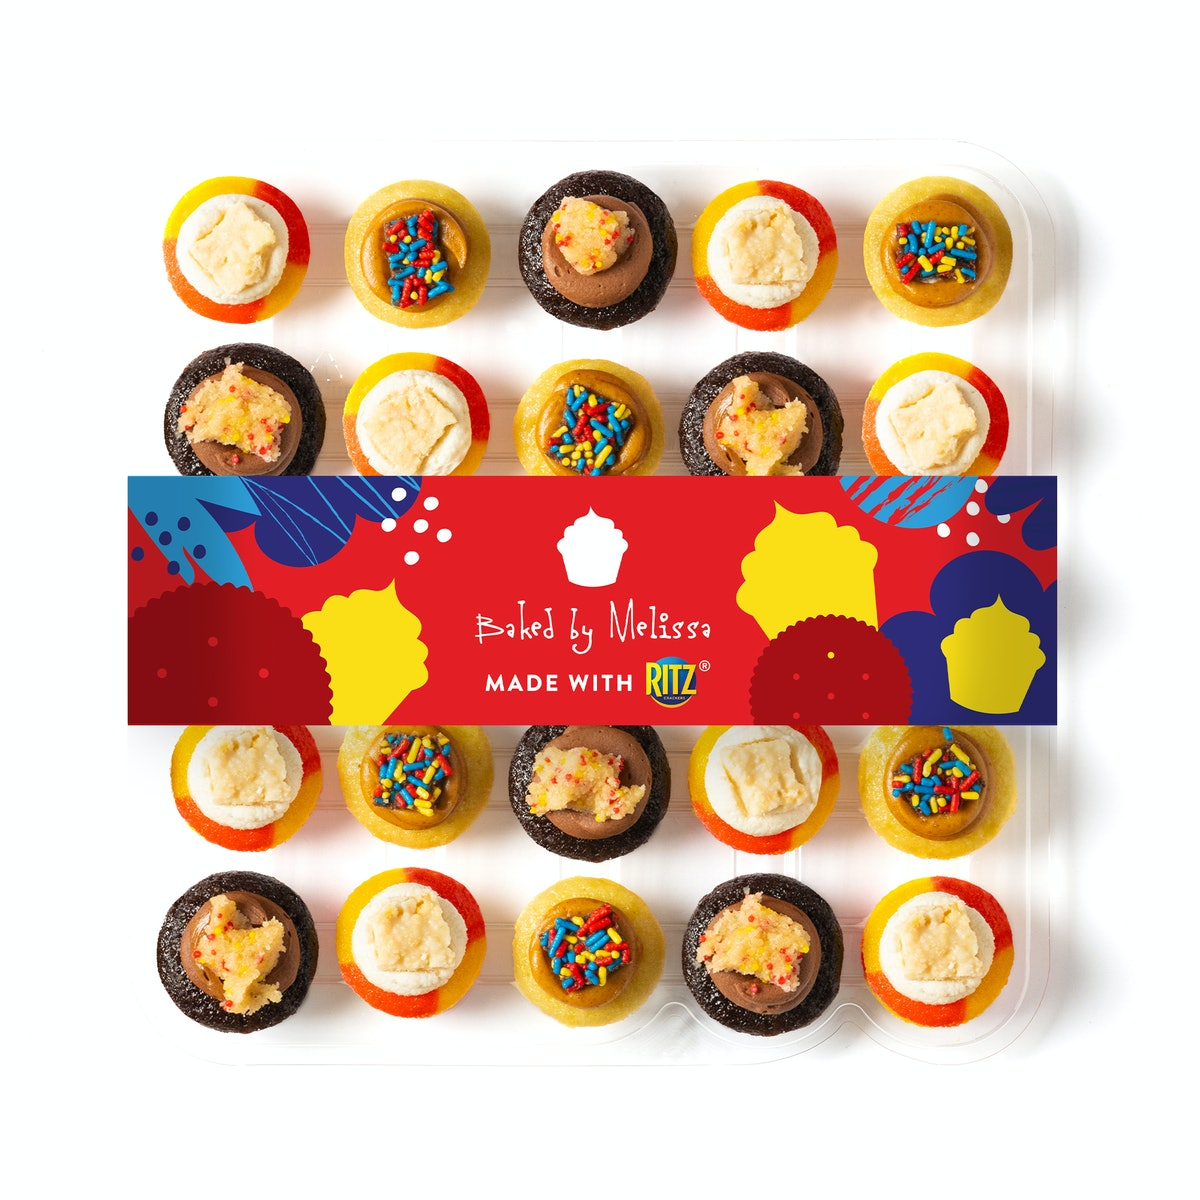 This Baked By Melissa and Ritz Crackers collaboration is a sweet and salty treat.